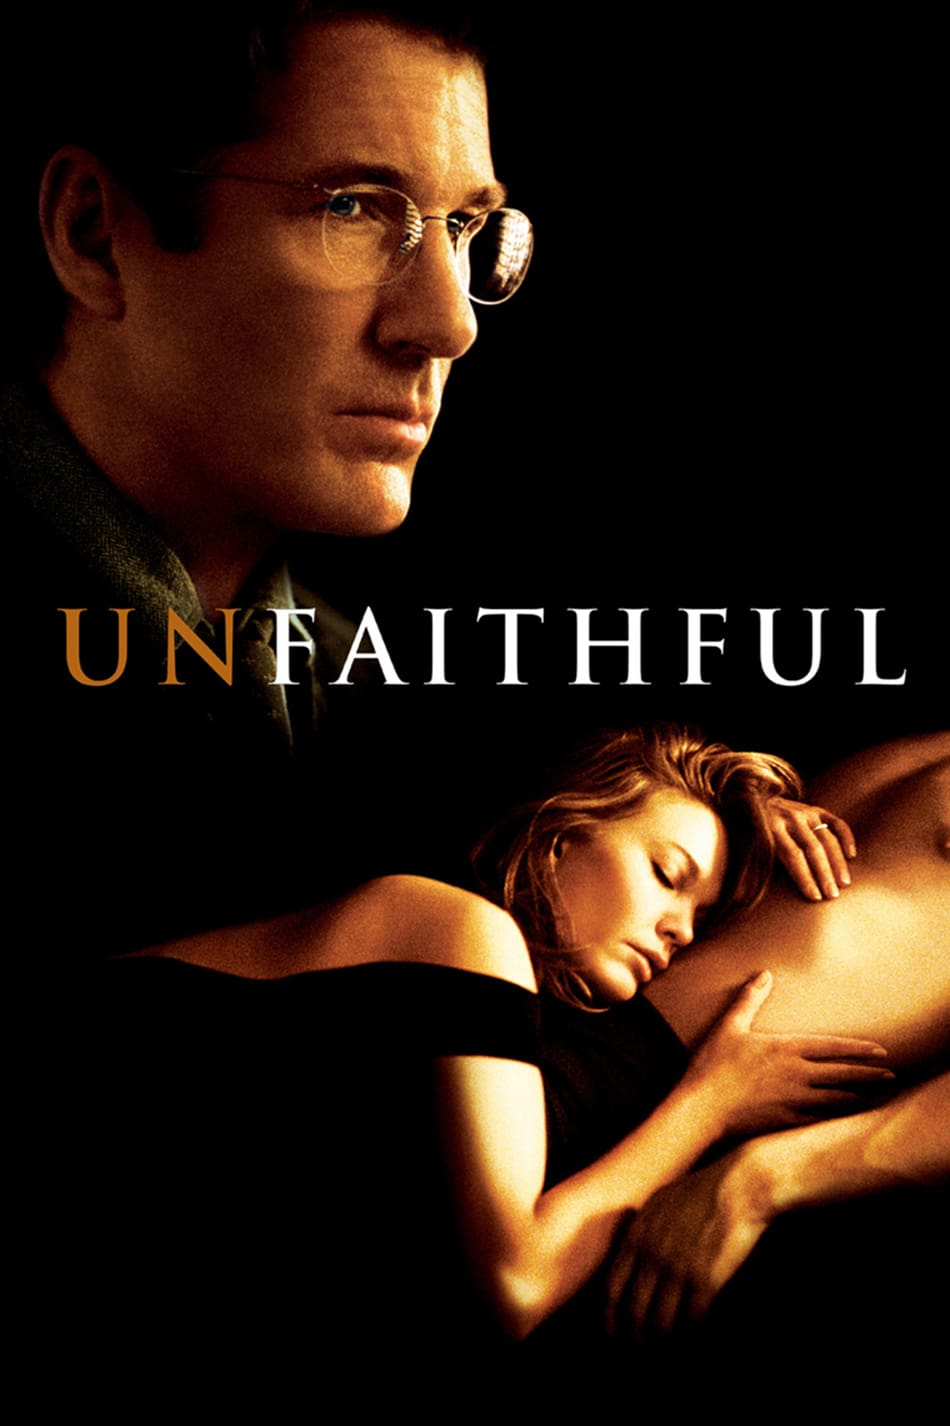 Download and Watch Unfaithful Full Movie Online Free - 720p